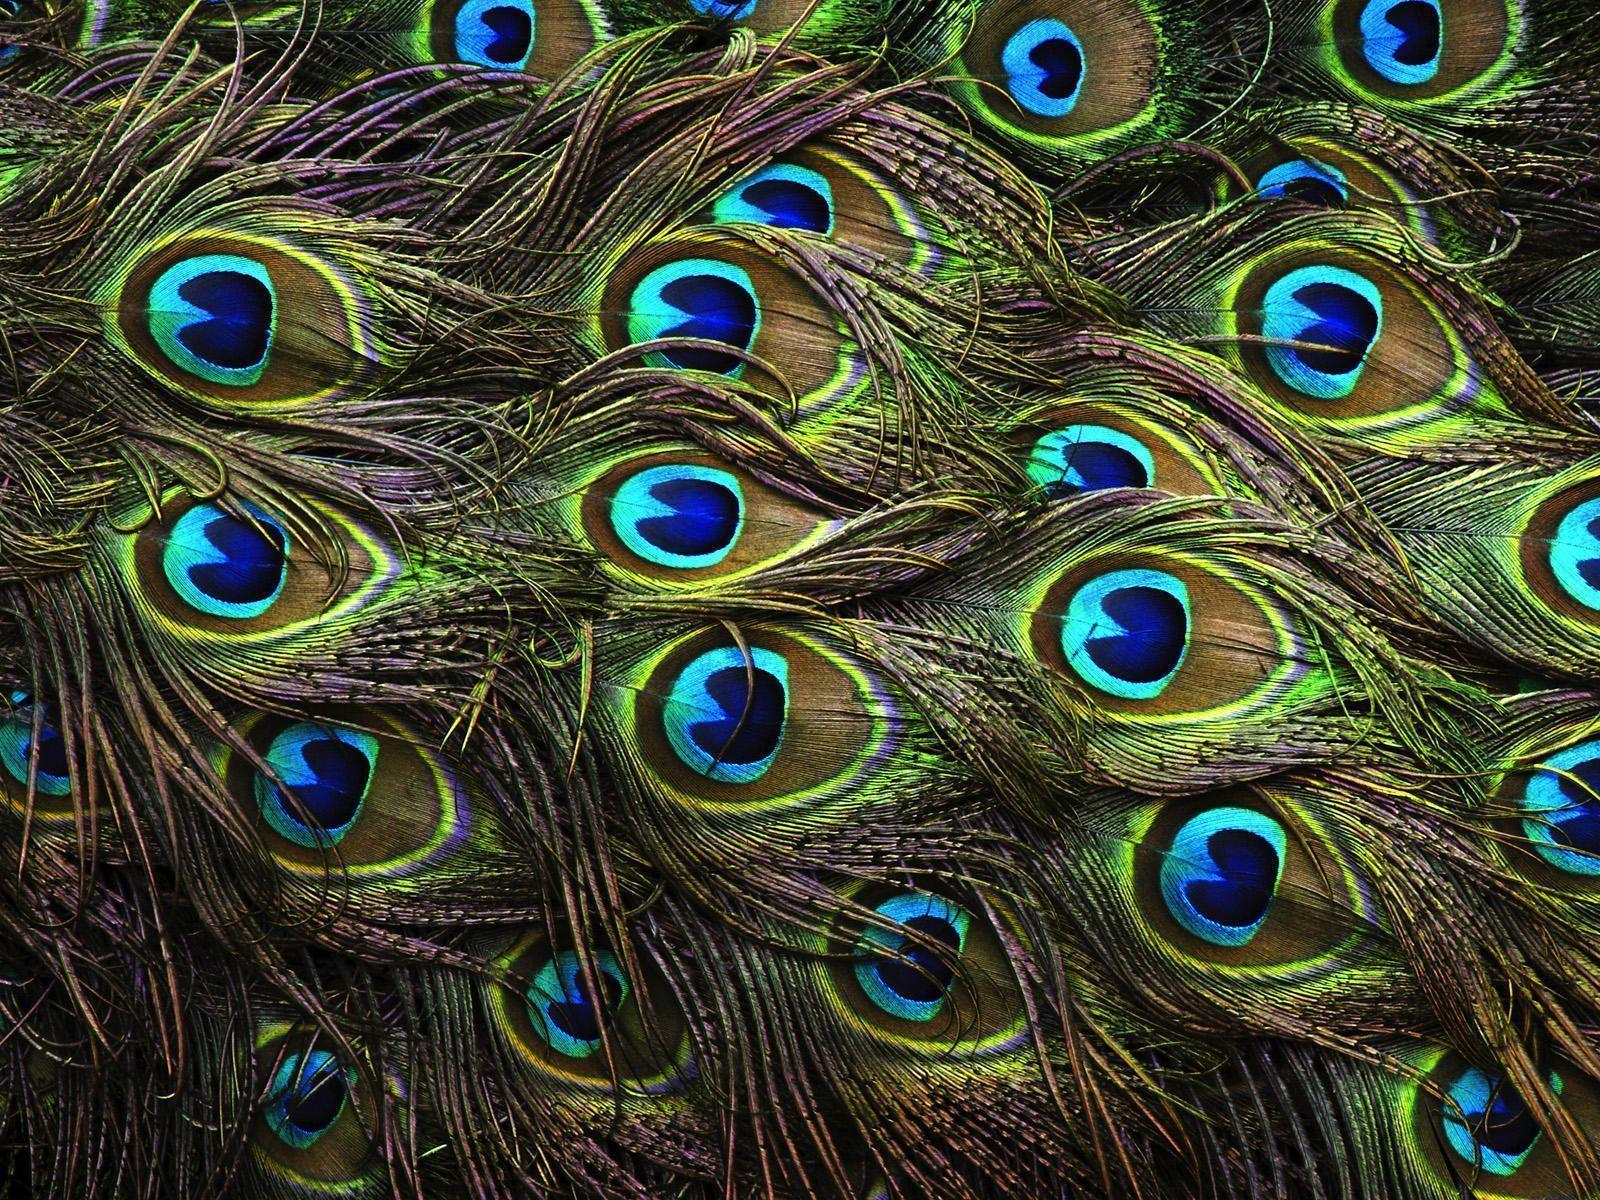 Wallpapers Of Peacock Feathers HD 2015 1600x1200